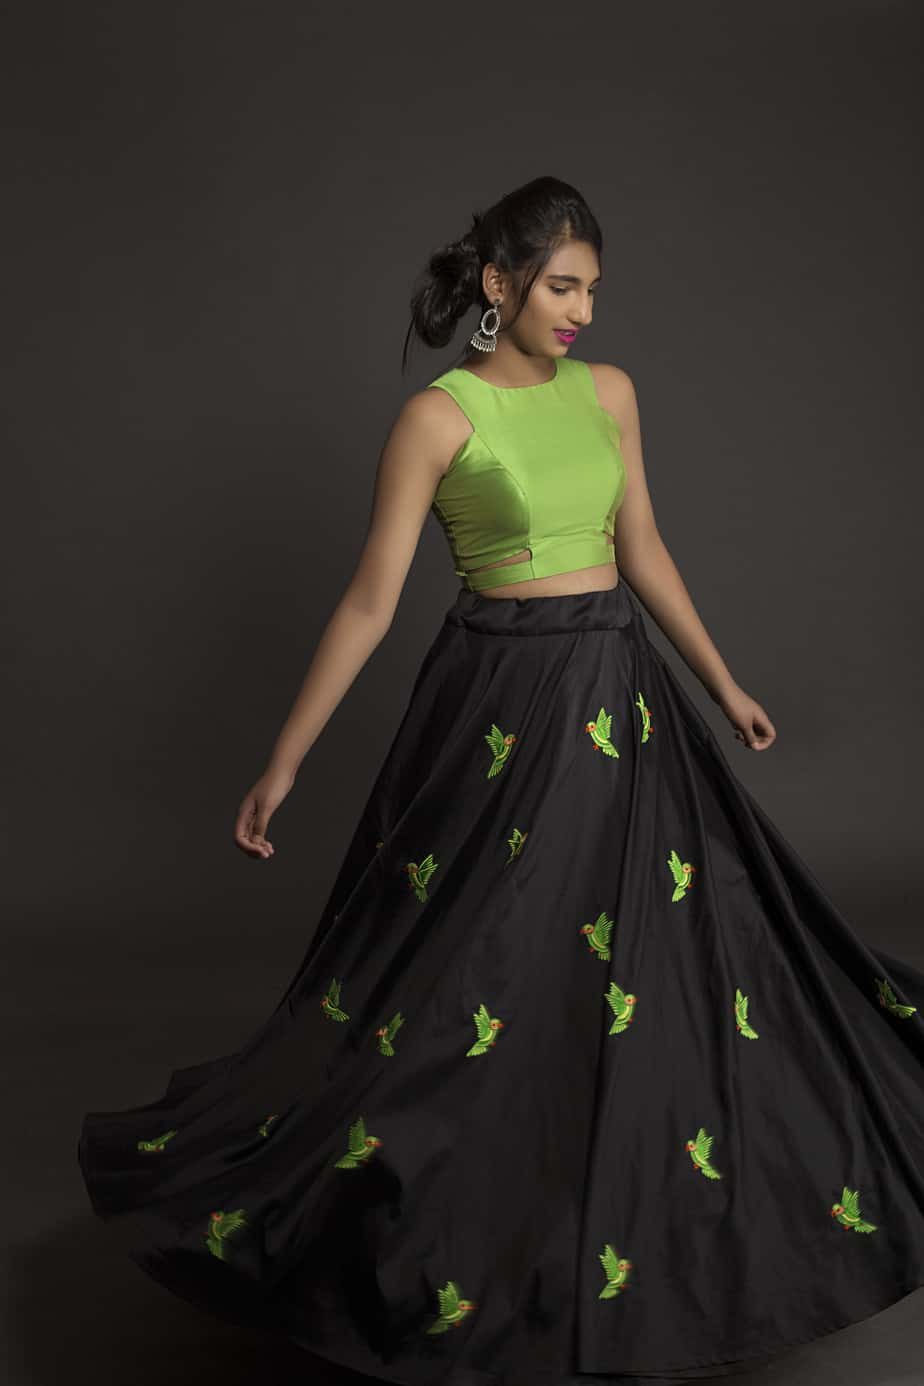 Long Skirt And Crop Top Sets By Kanakadhara Designs